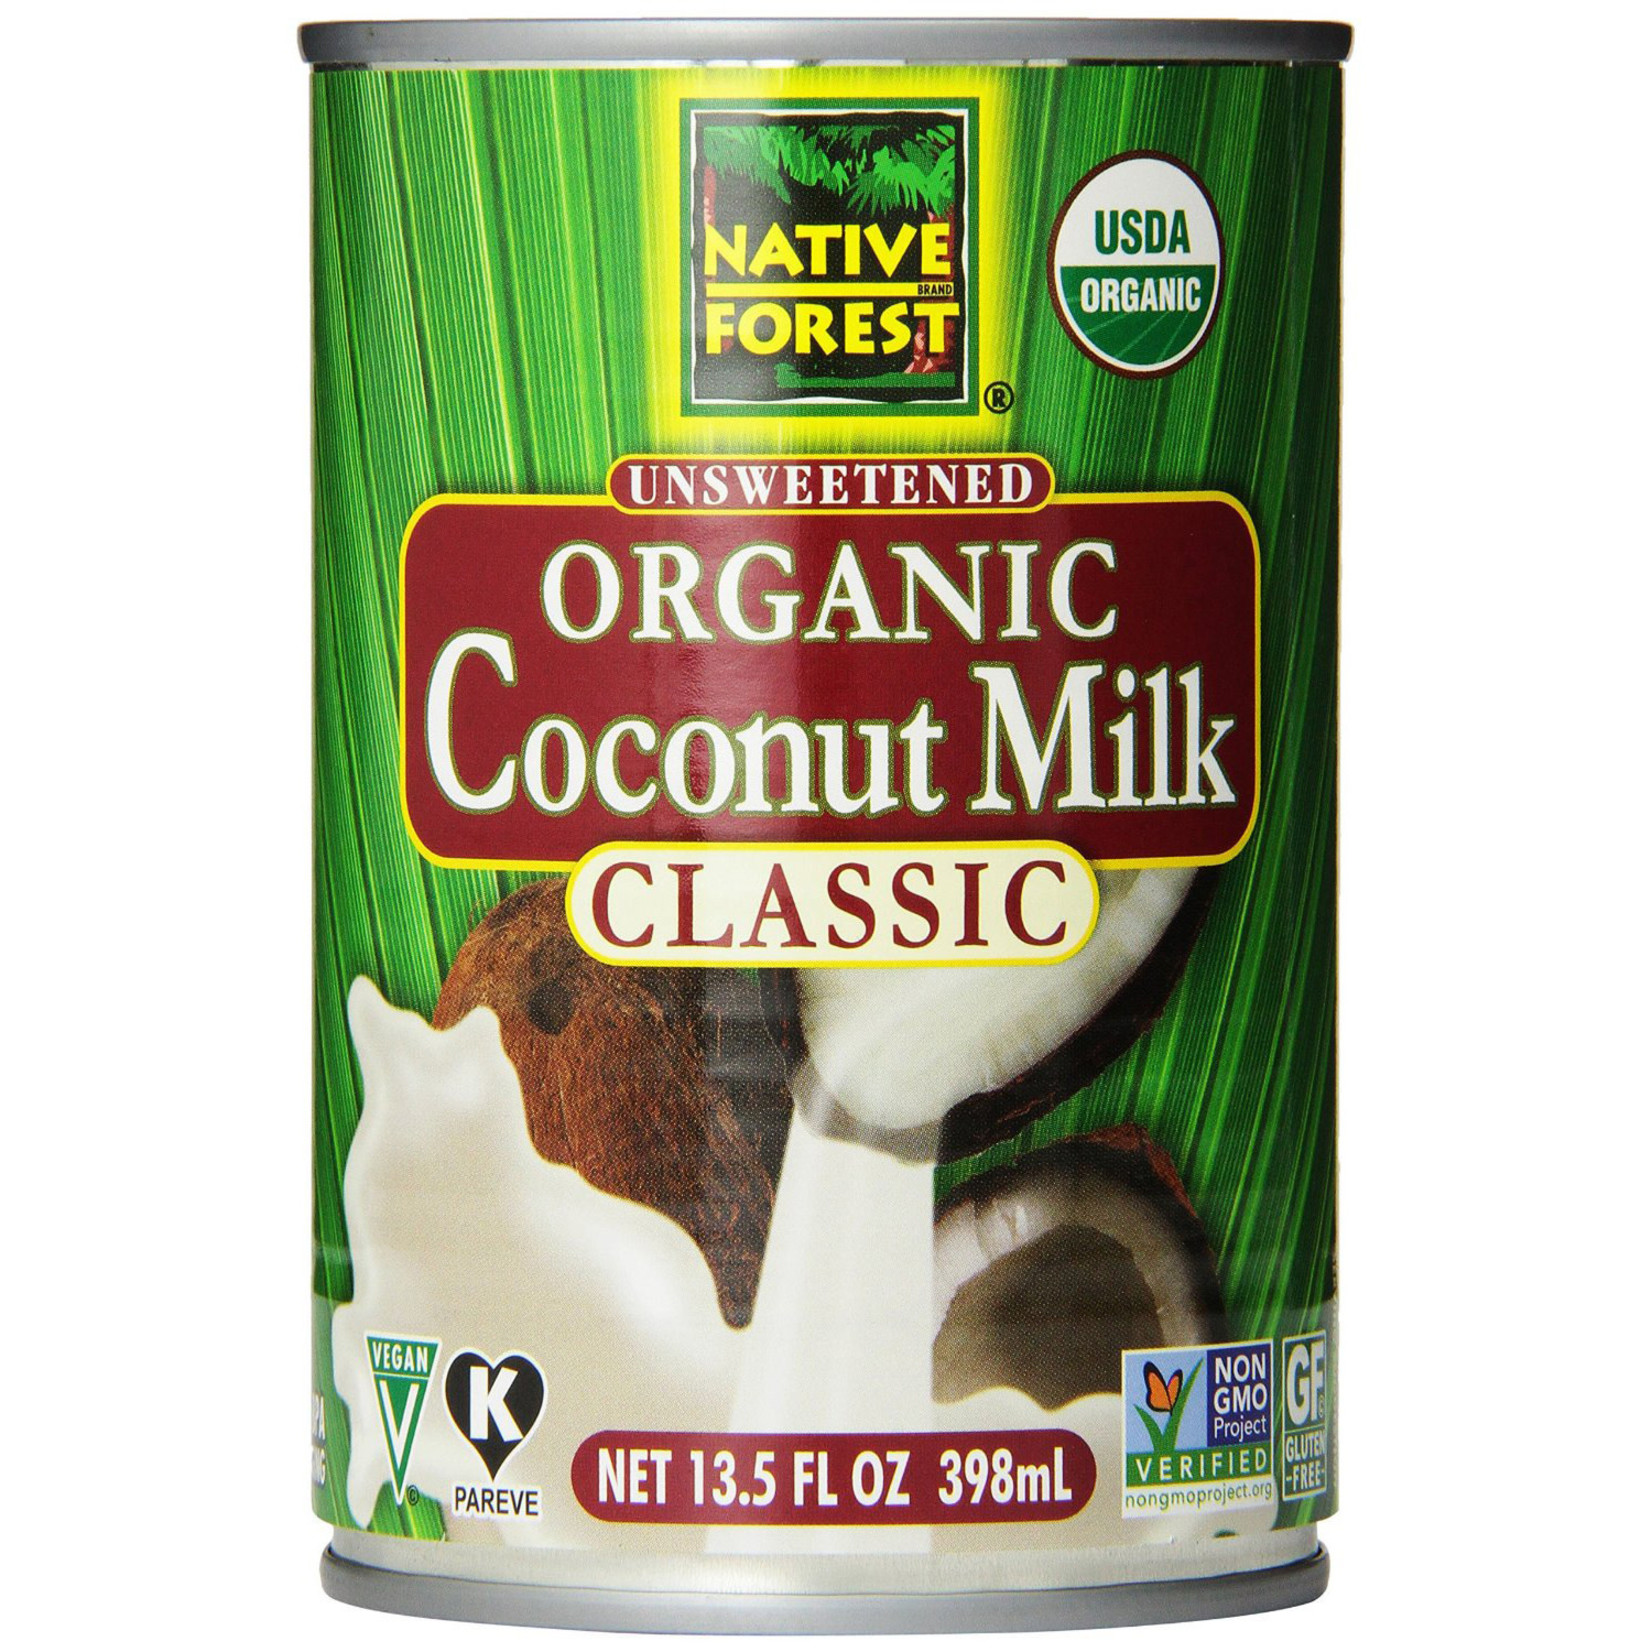 Native Forest Native Forest Organic Coconut Milk